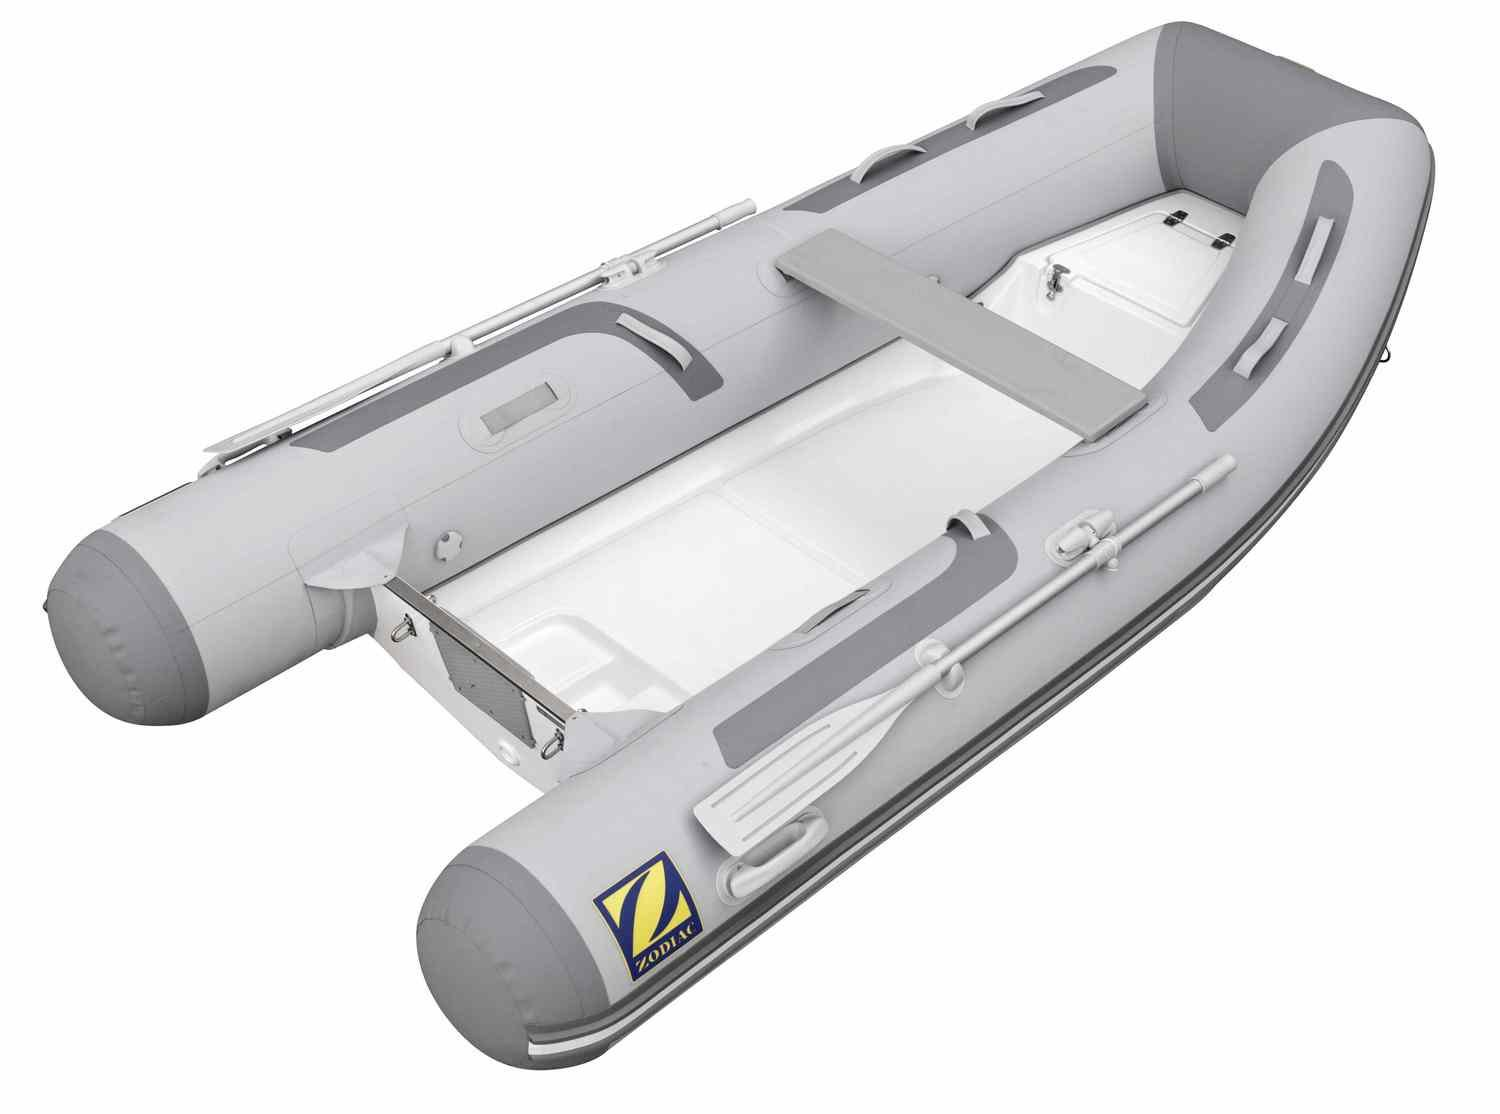 Zodiac CADET TRUE RIB Tenders and Boats: 2.6m - 3.4m; SELECT MODEL FOR PRICE